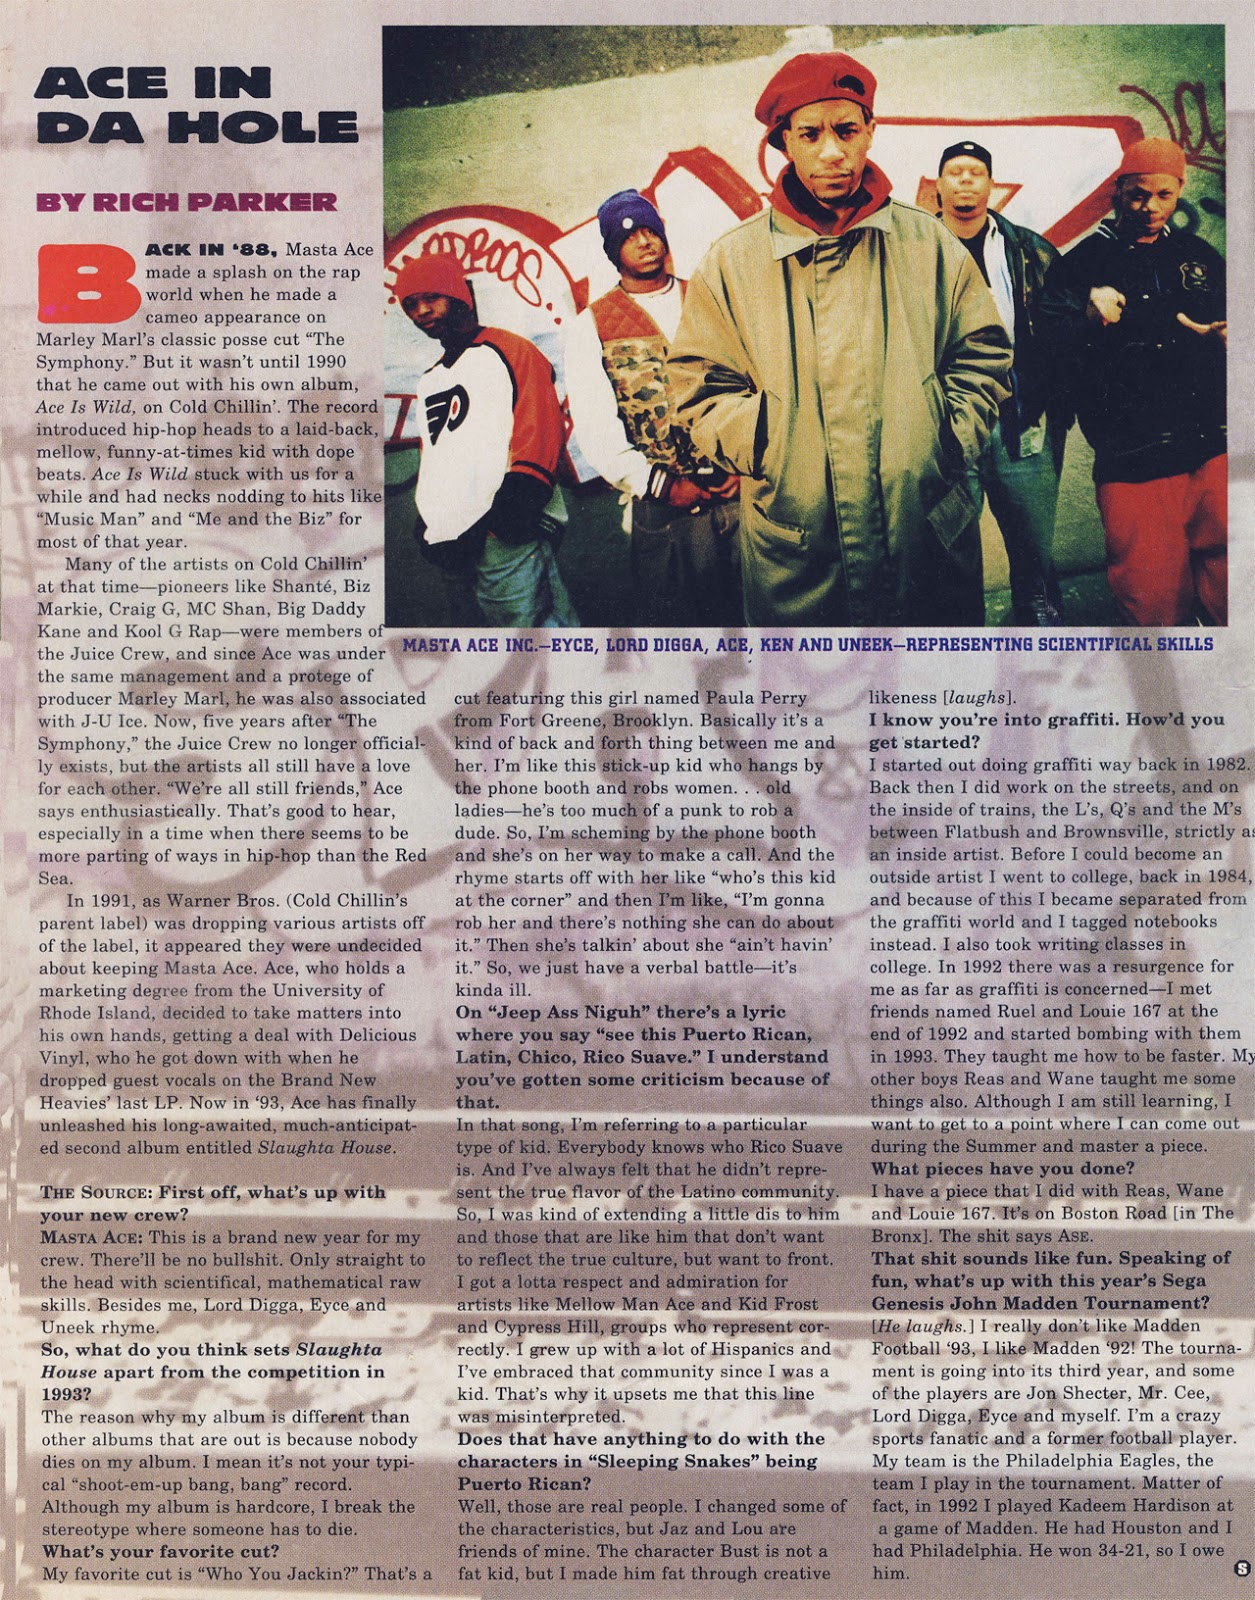 Masta Ace Incorporated Slaughtahouse The Source Magazine Interview June 1993